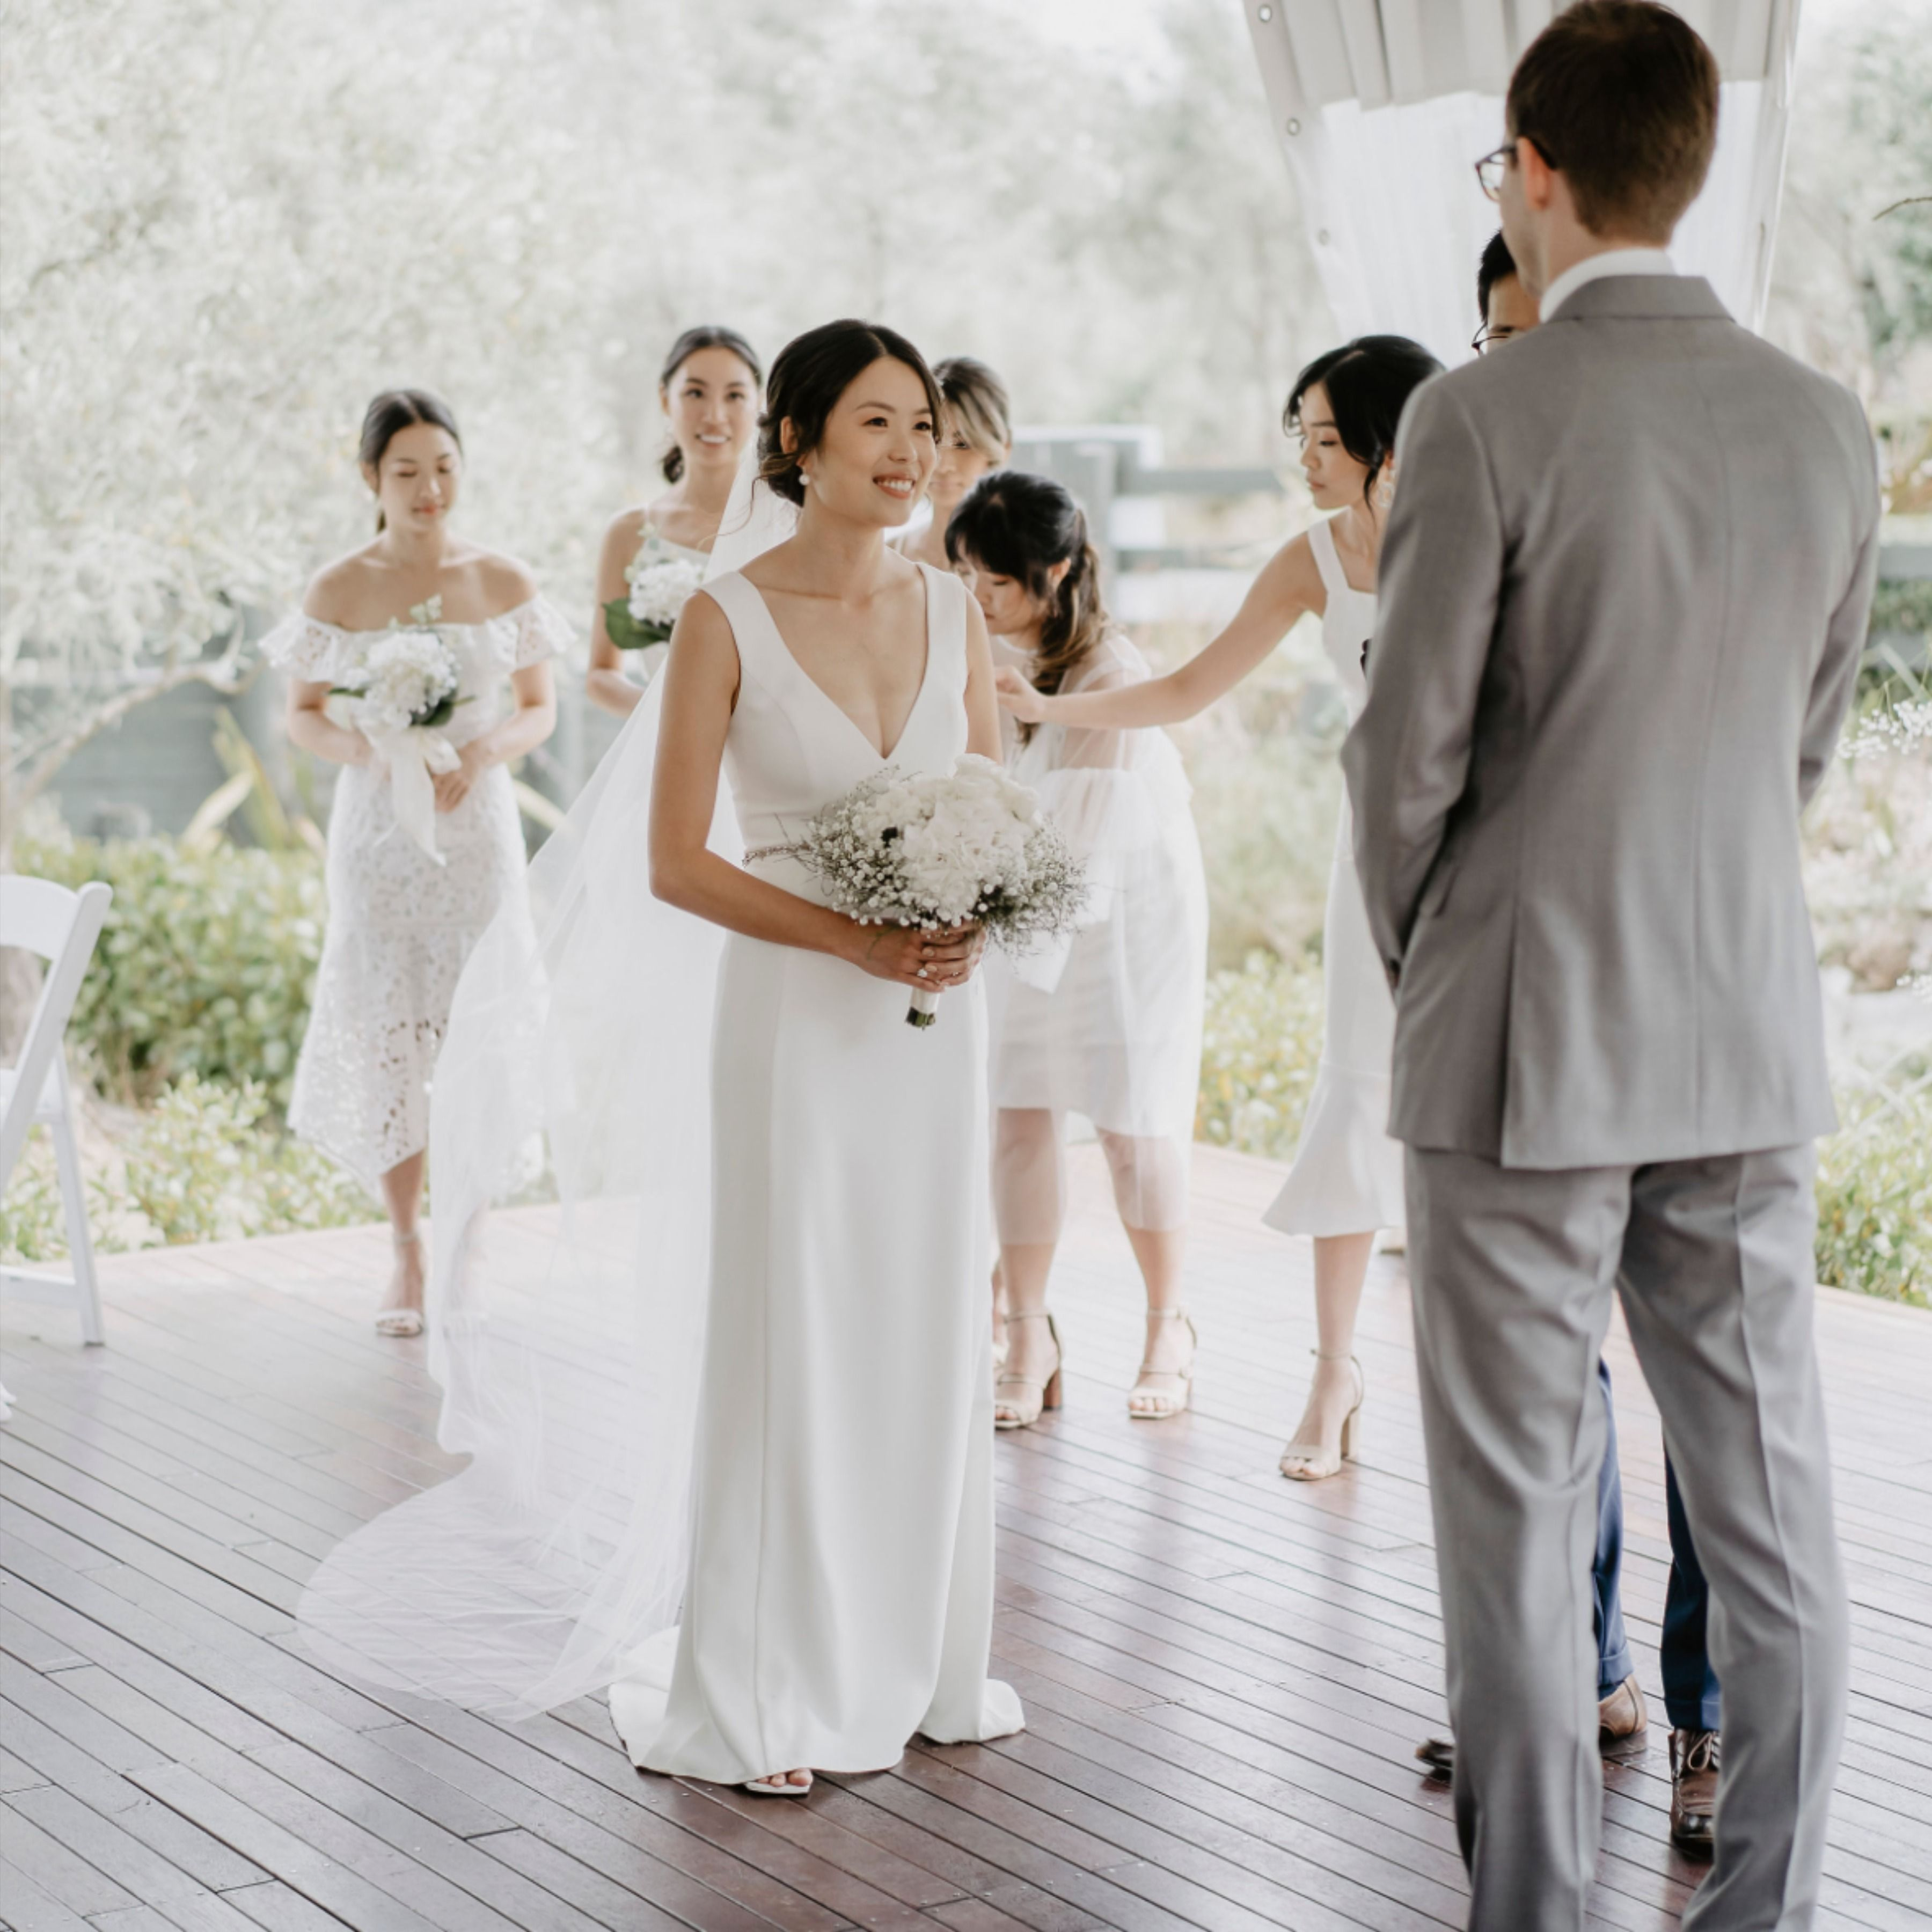 Real All White Wedding Wedding Dresses Fitted Wedding Dress White Winter Wedding [ 3600 x 3600 Pixel ]